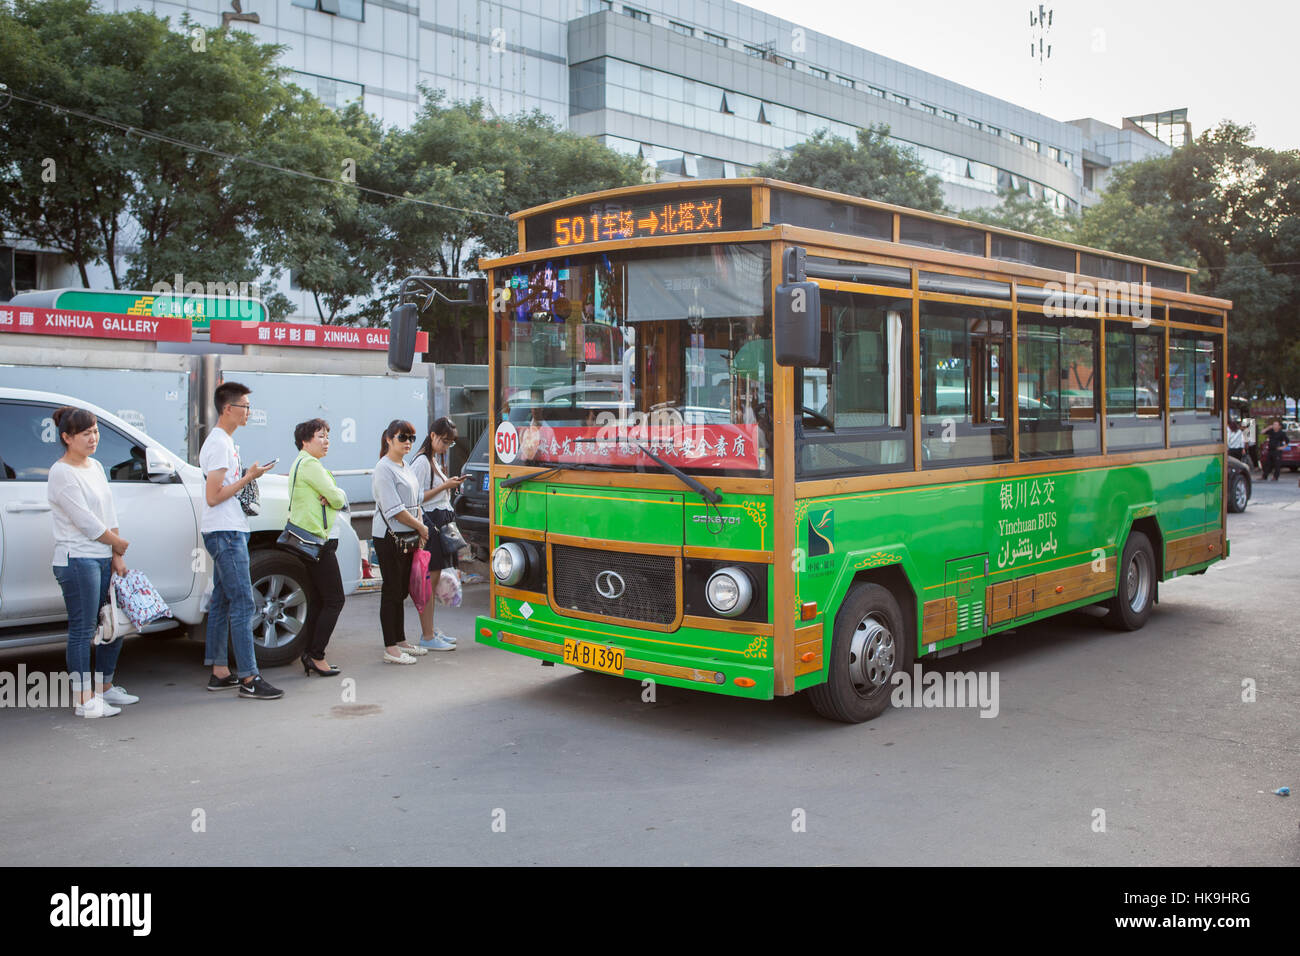 People getting onto the typical urban bus. Yinchuan, Ningxia, China Stock Photo